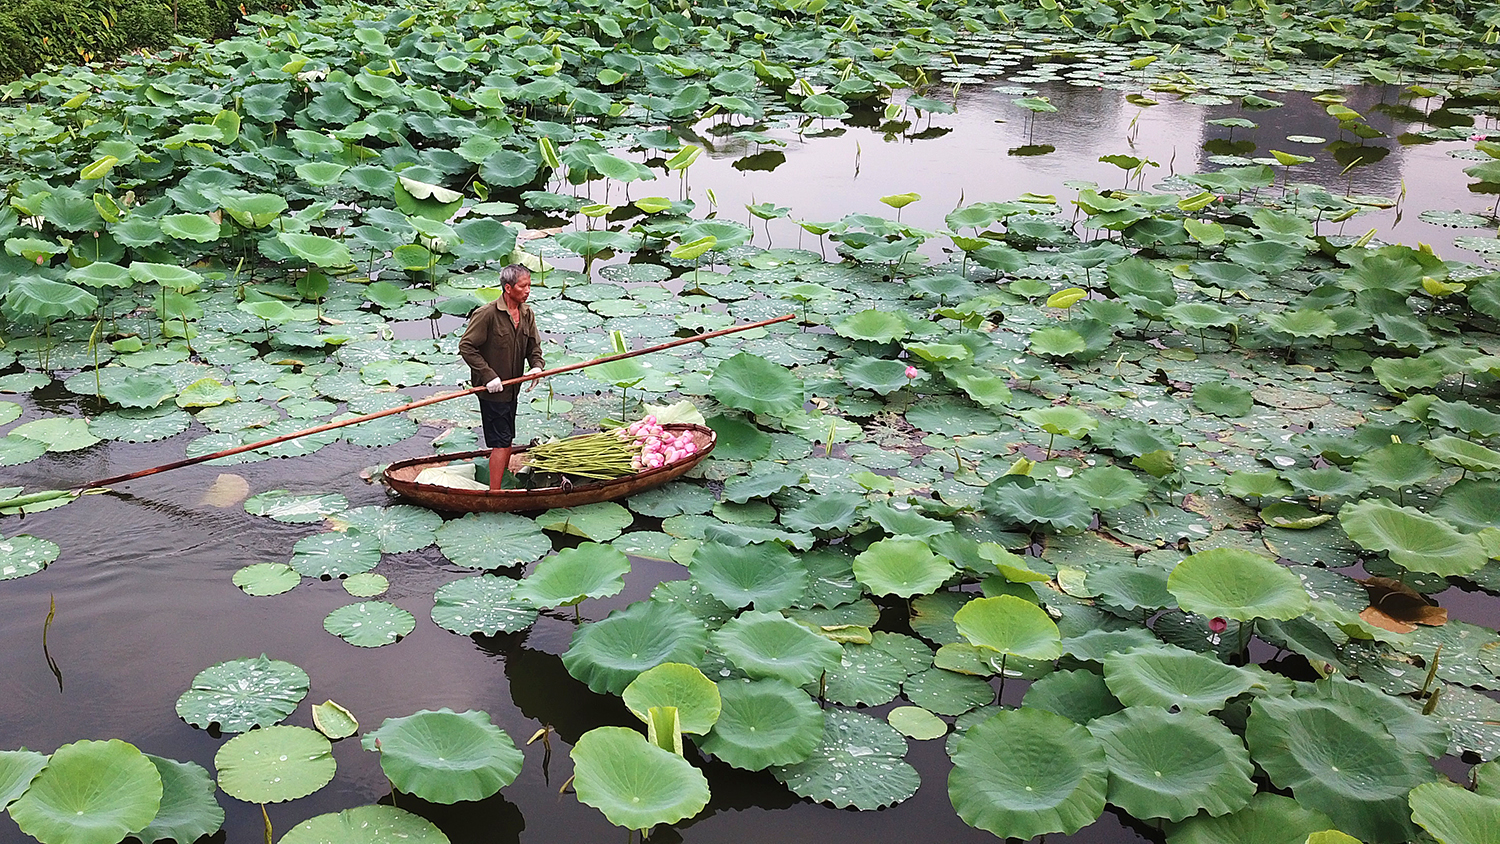 The lotus lake in West Lake